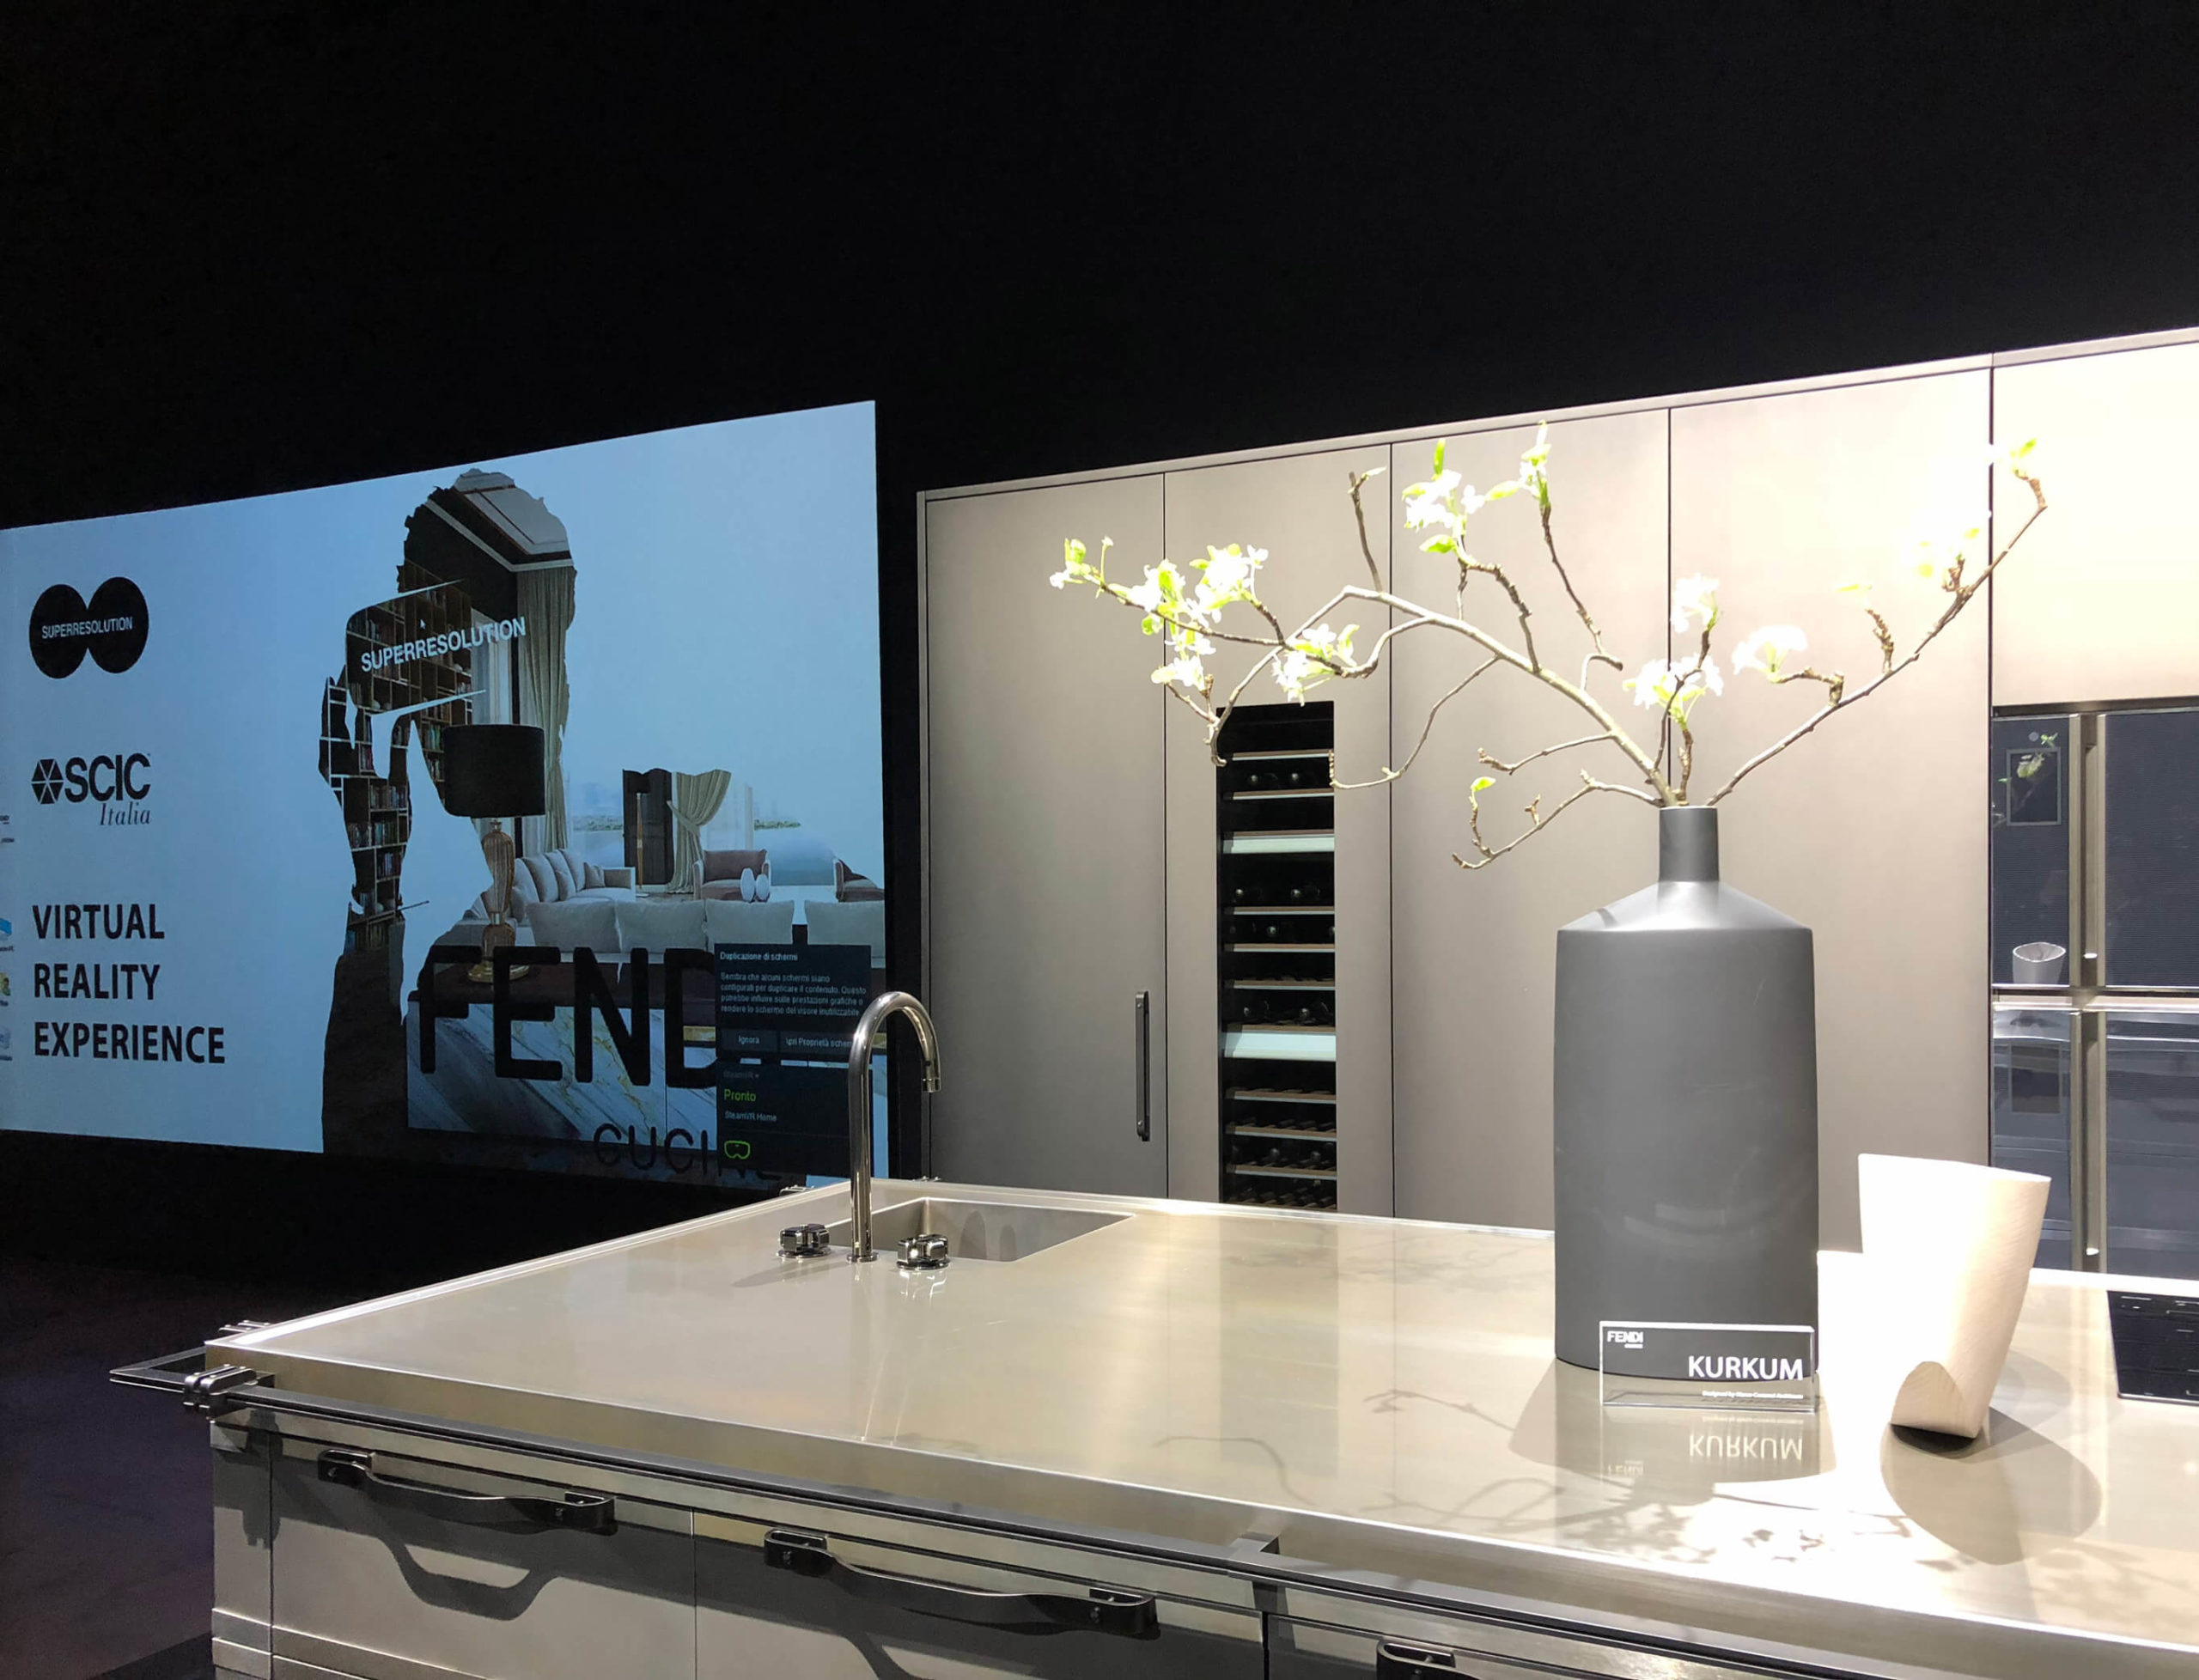 Fendi cucine al Salone del Mobile 2018 con Superresolution